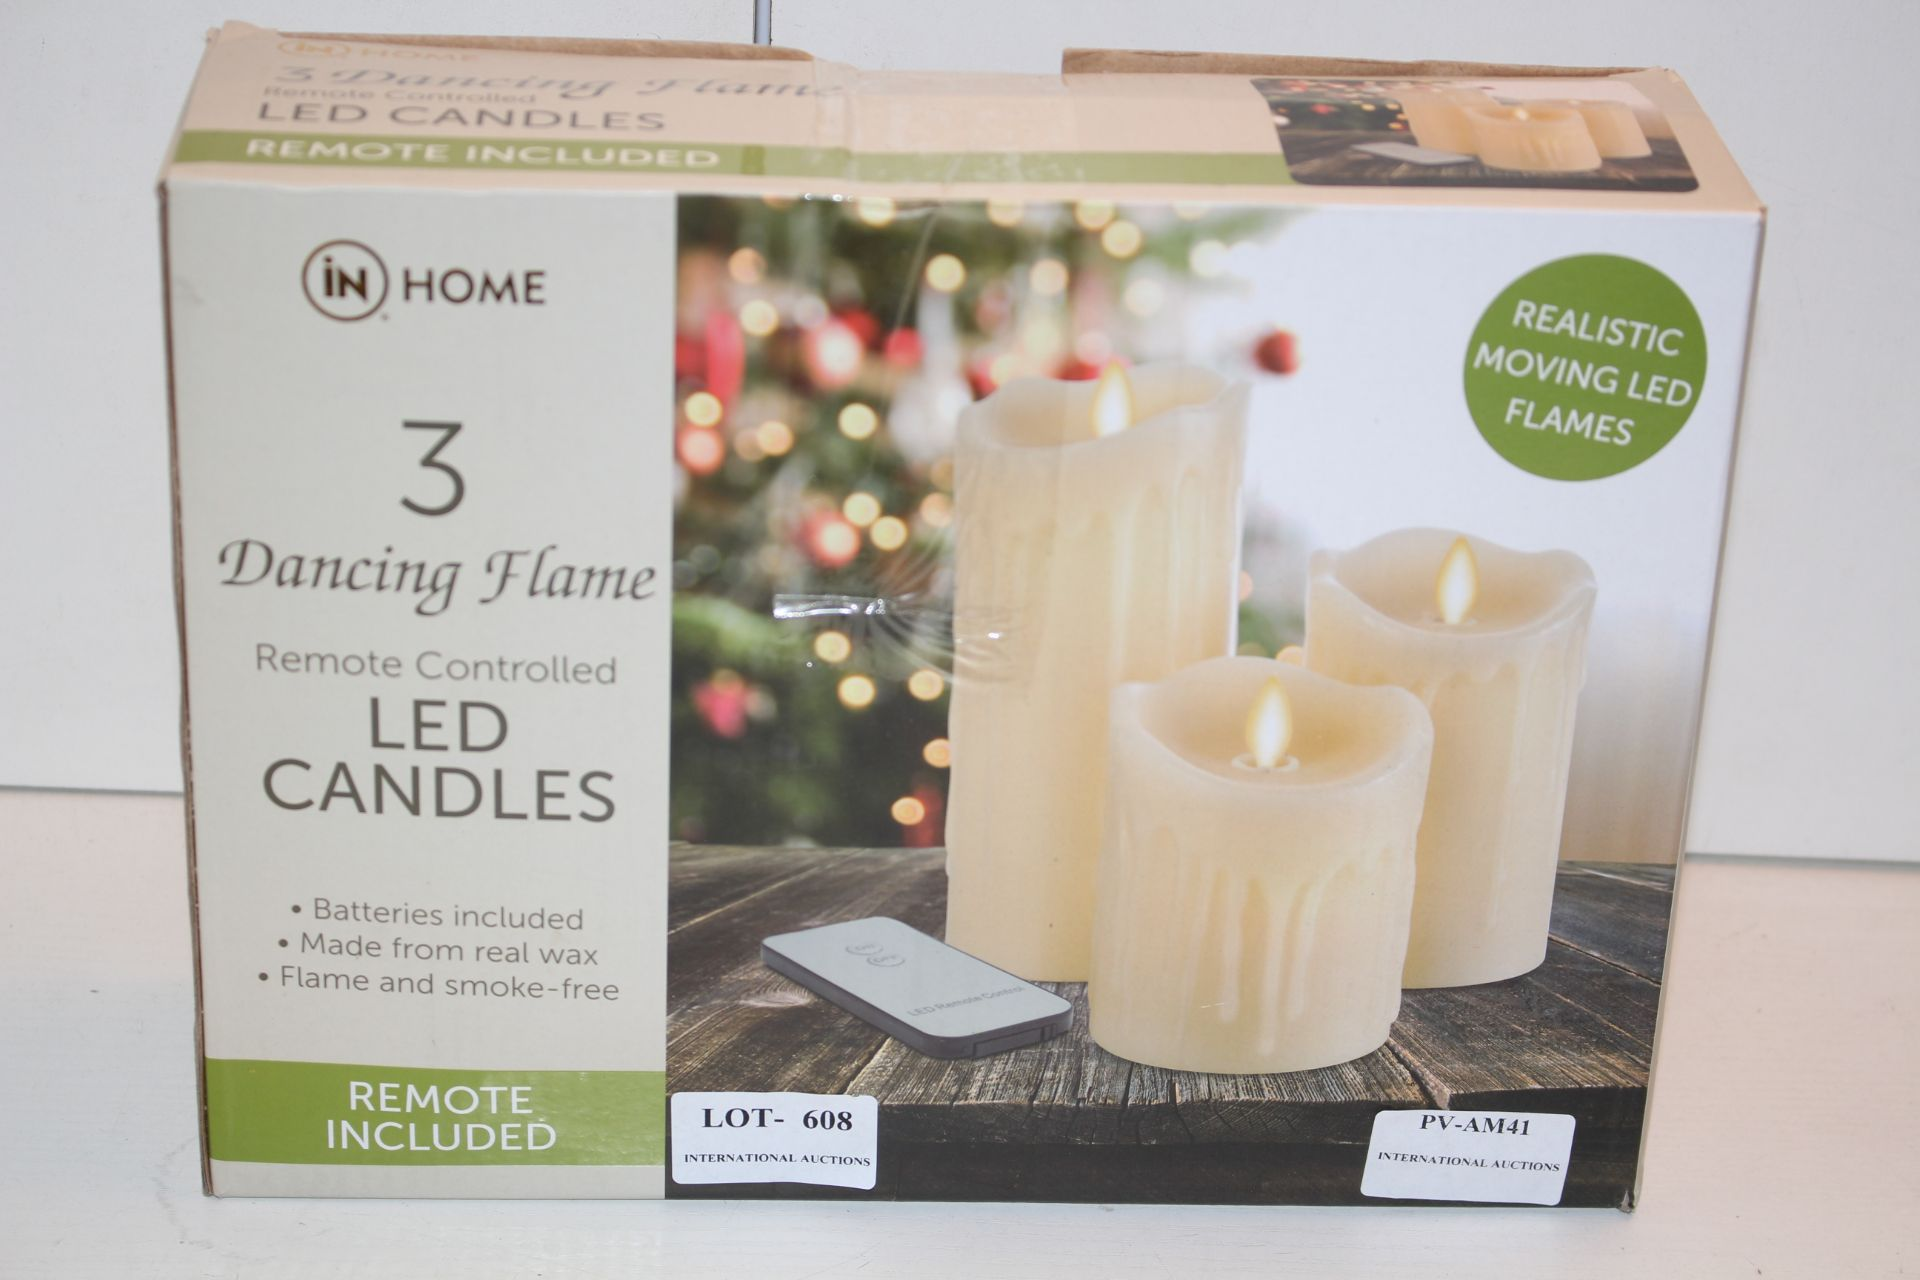 BOXED IN HOME 3 DANCING DECORATIVE CANDLESCondition ReportAppraisal Available on Request- All